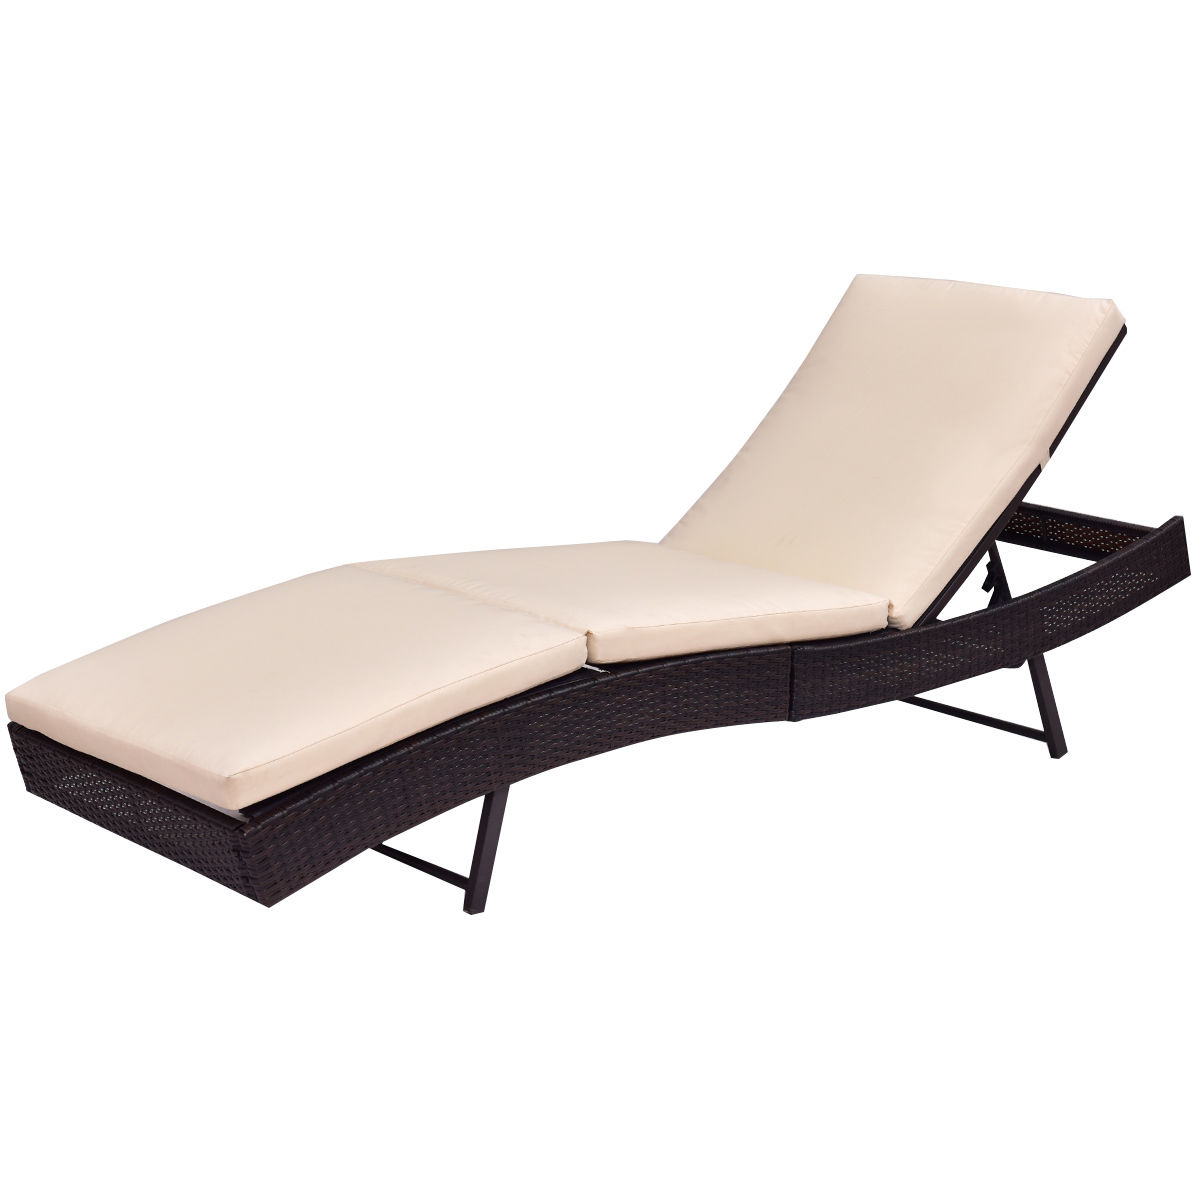 Delightful Gymax Outdoor Patio Adjustable Sun Bed Wicker Lounge Chair